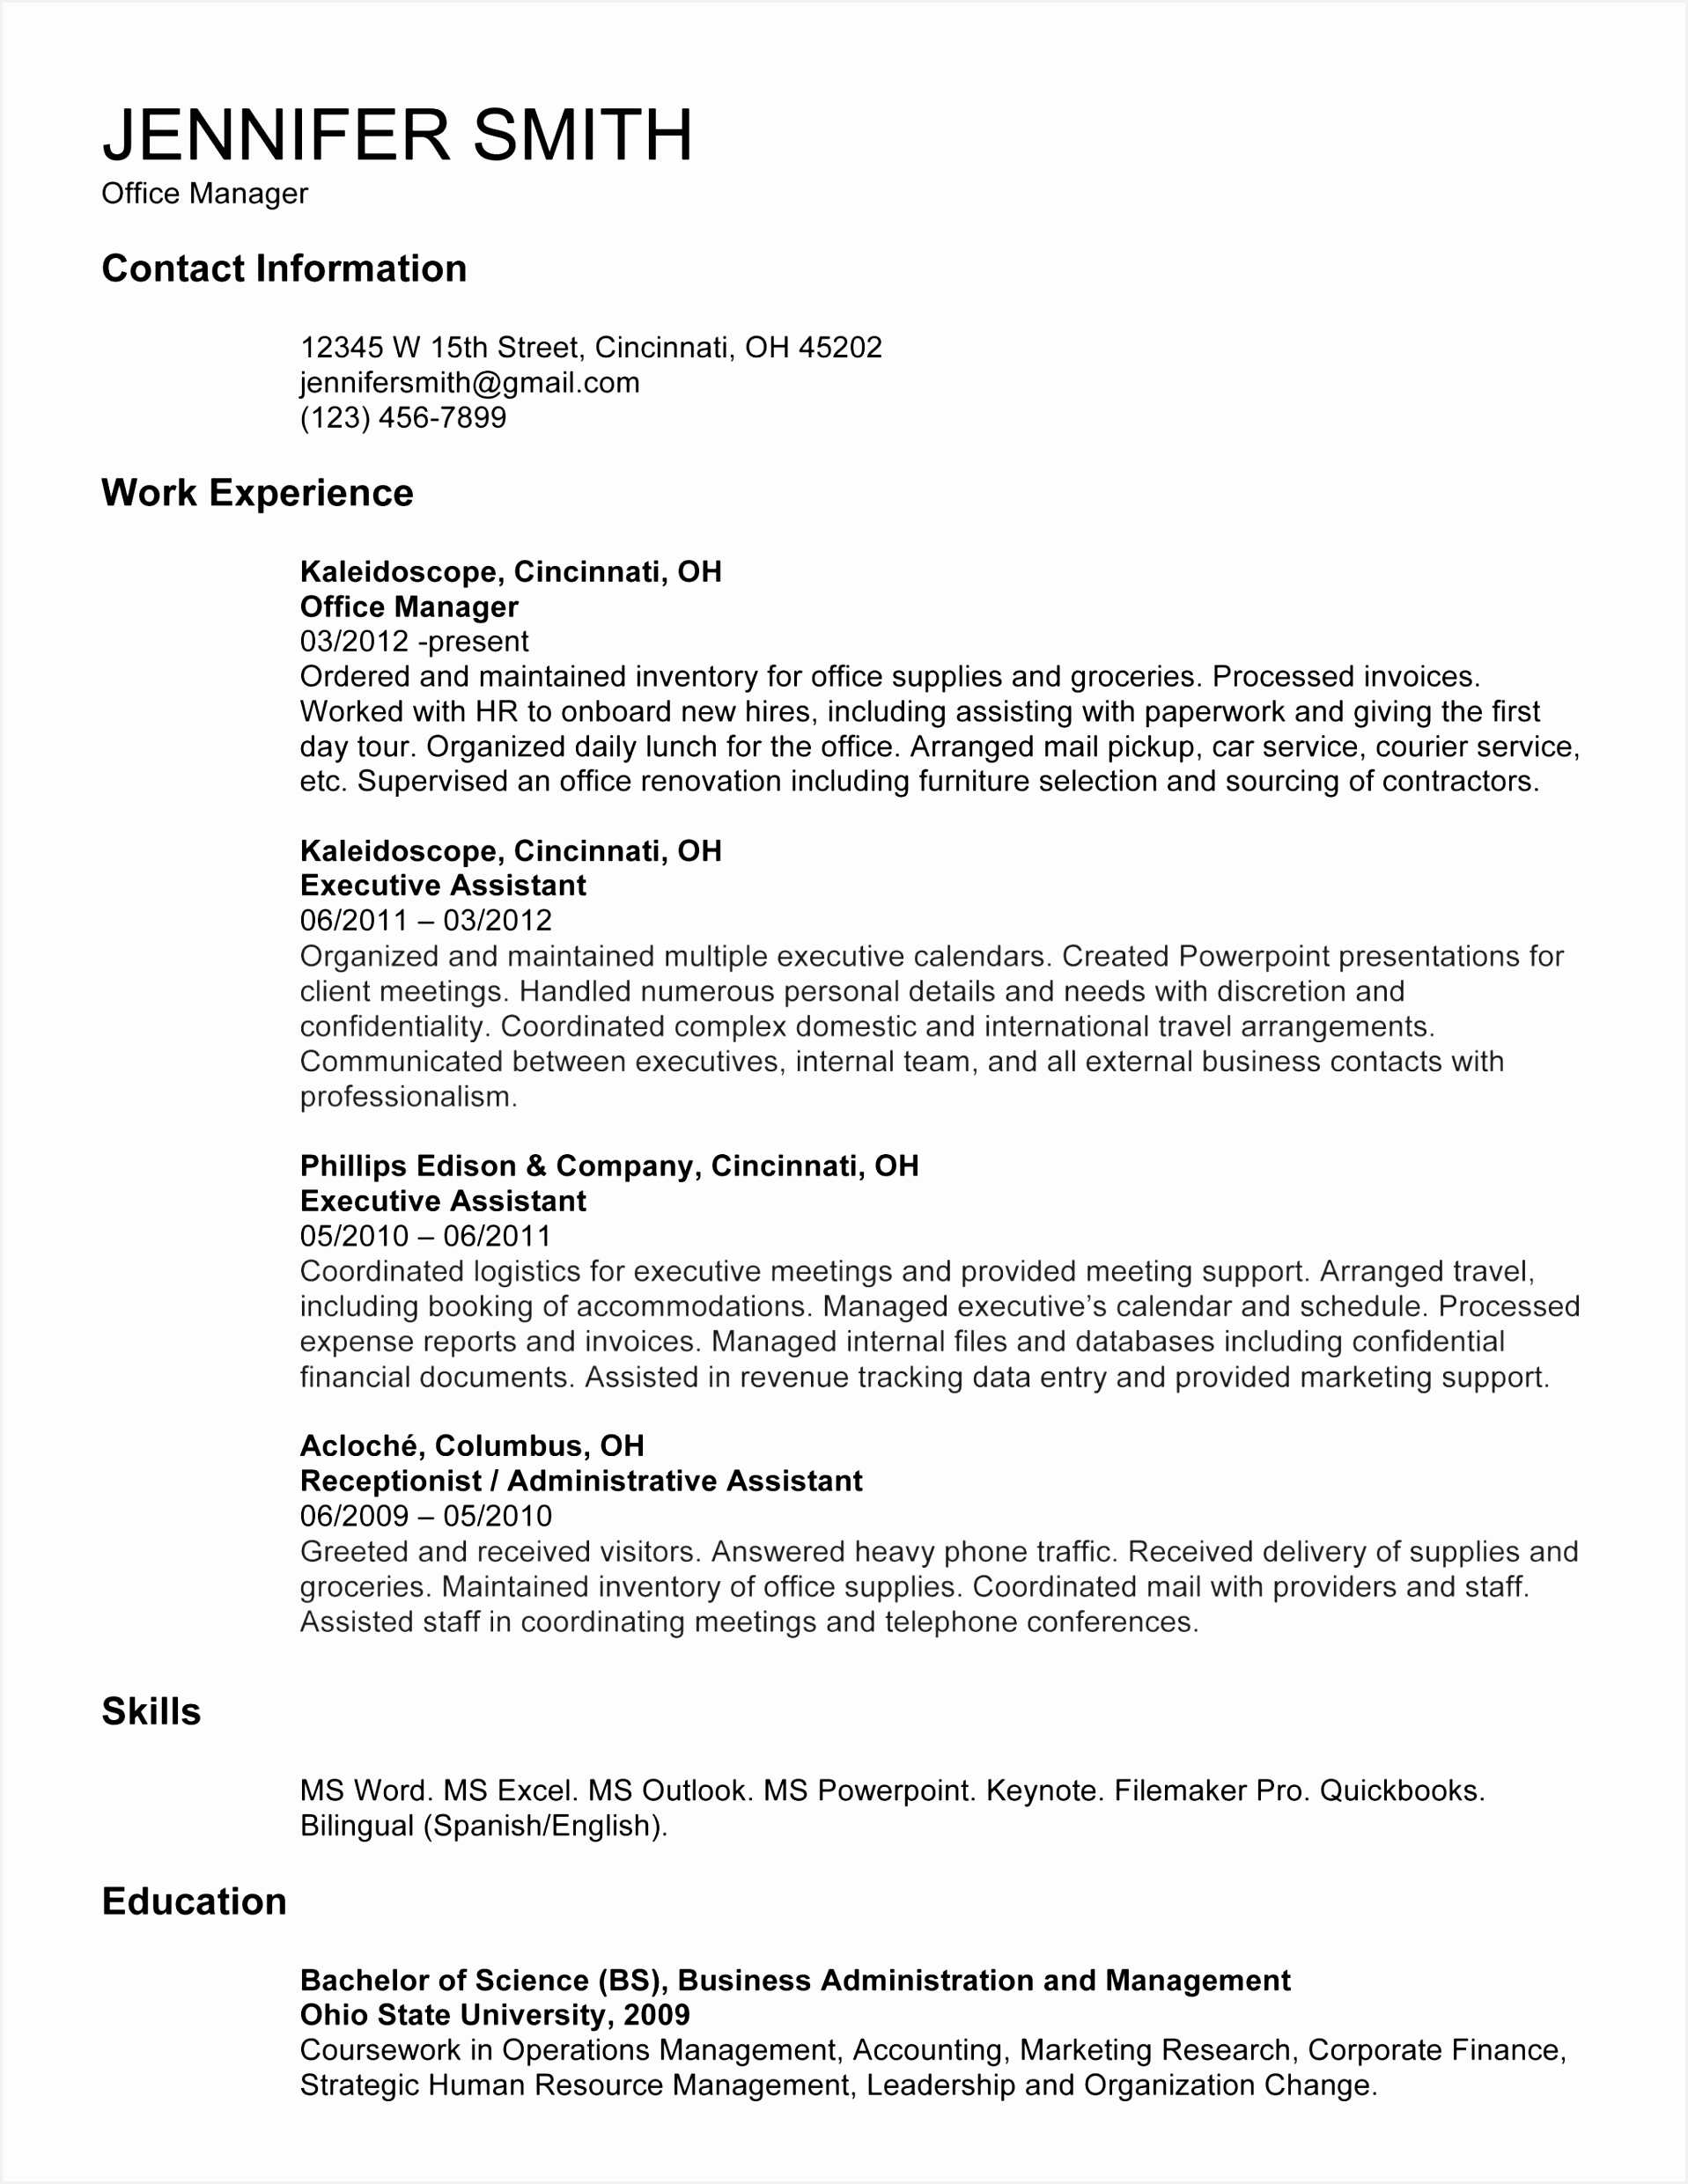 Aerospace Sales Sample Resume Whkof Beautiful Beautiful Aircraft Maintenance Resume Yi08 – Documentaries for Change Of 10 Aerospace Sales Sample Resume